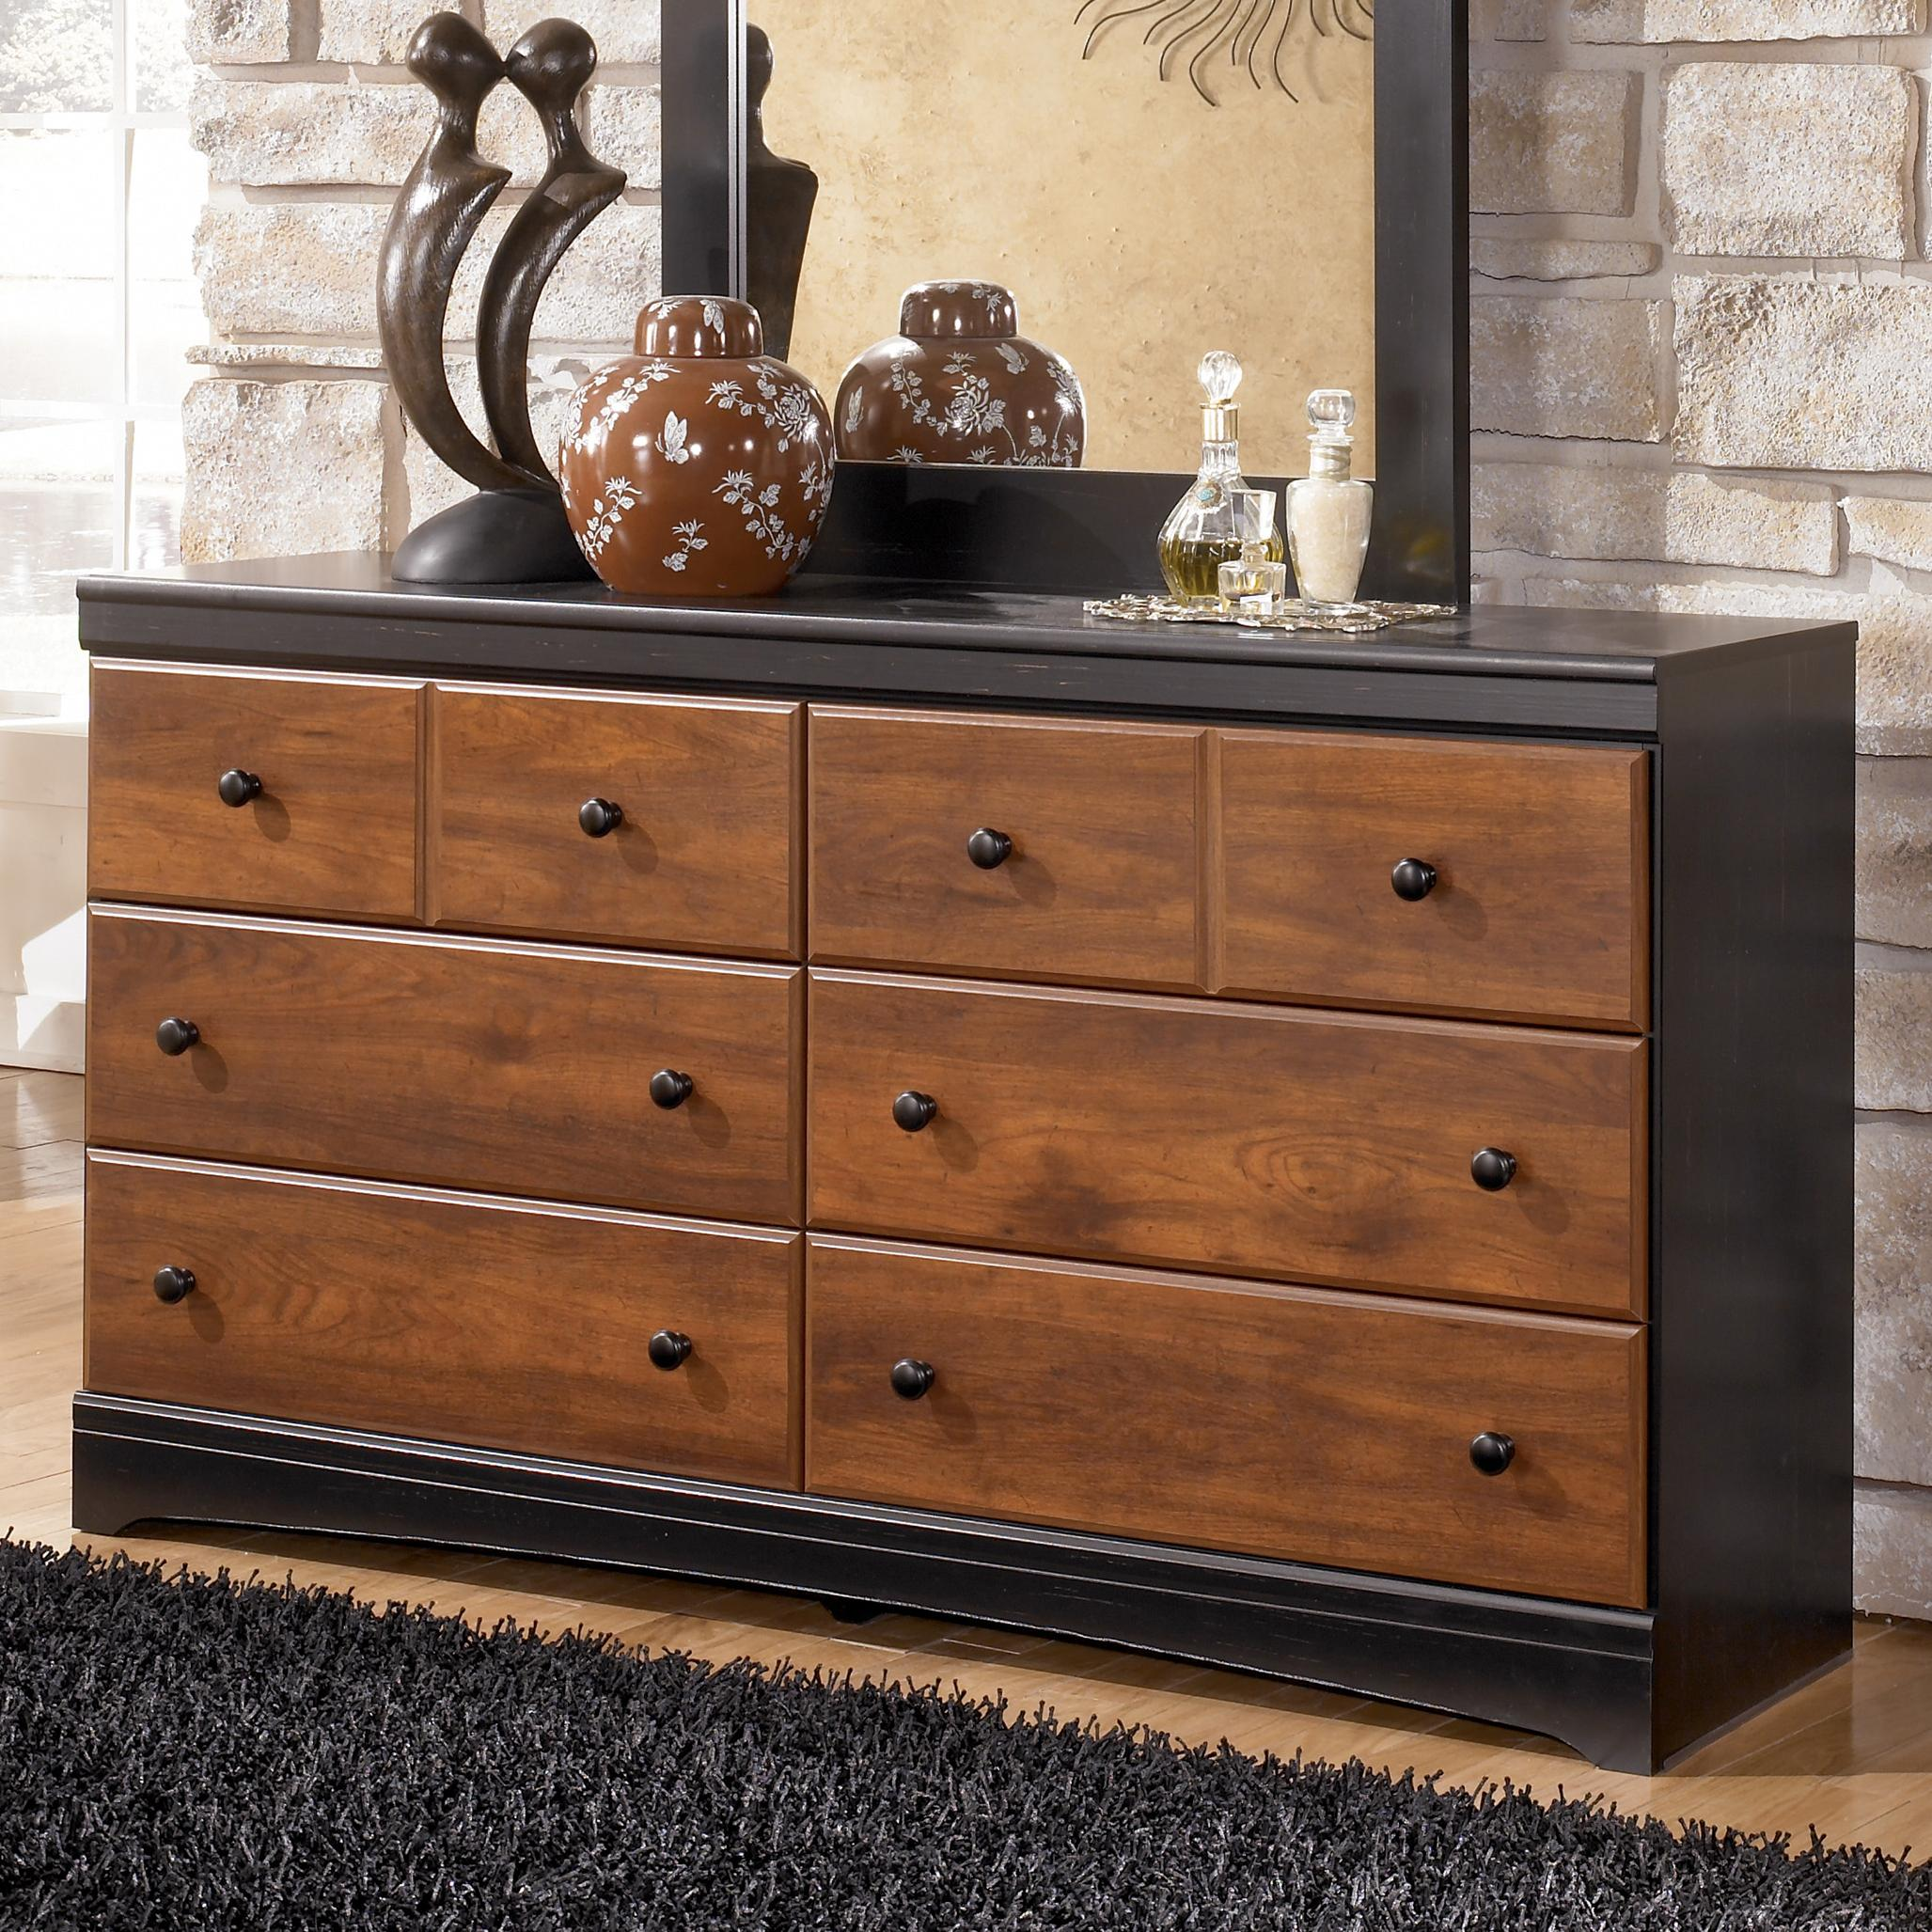 Ashley Signature Design Aimwell B13631 TwoTone Finish Dresser with 6 Drawers  Dunk  Bright